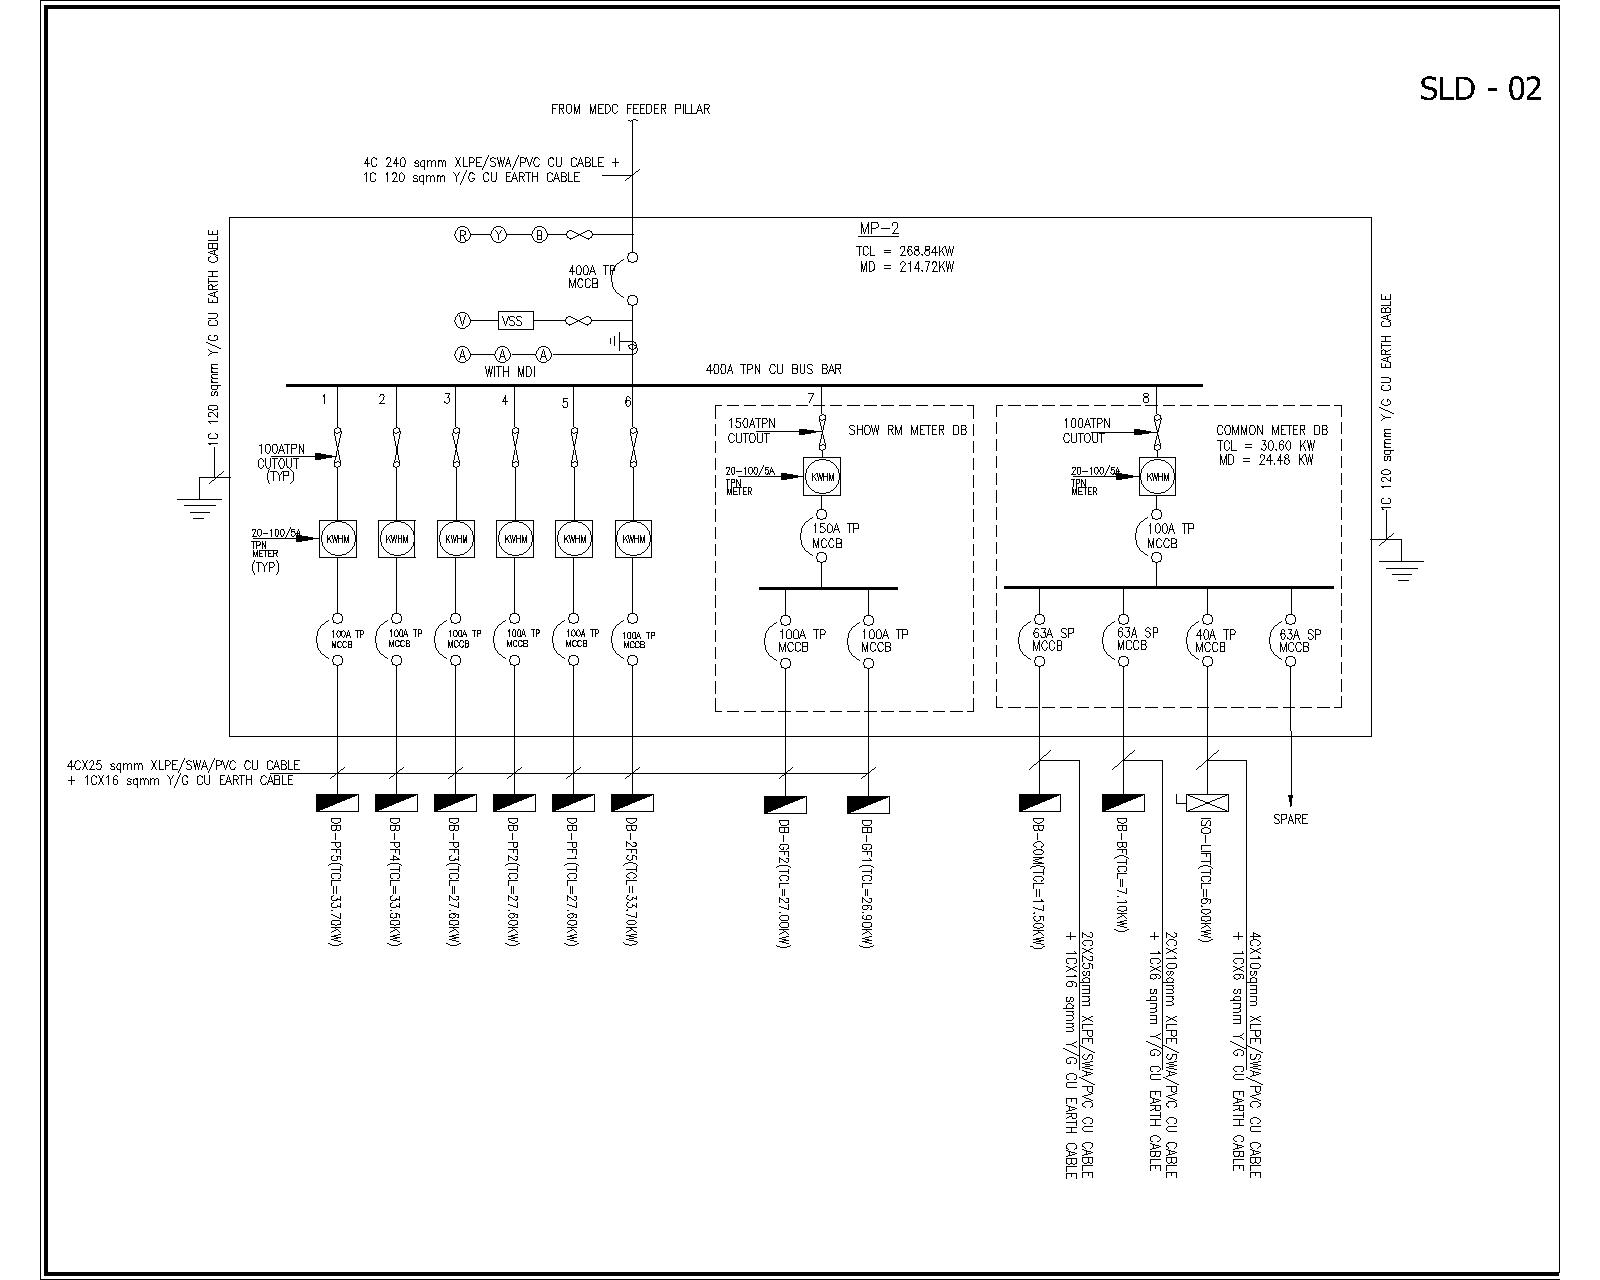 Desigen and Drafting Electrical Panel and Distribution Schematic Drawing in Auto CAD